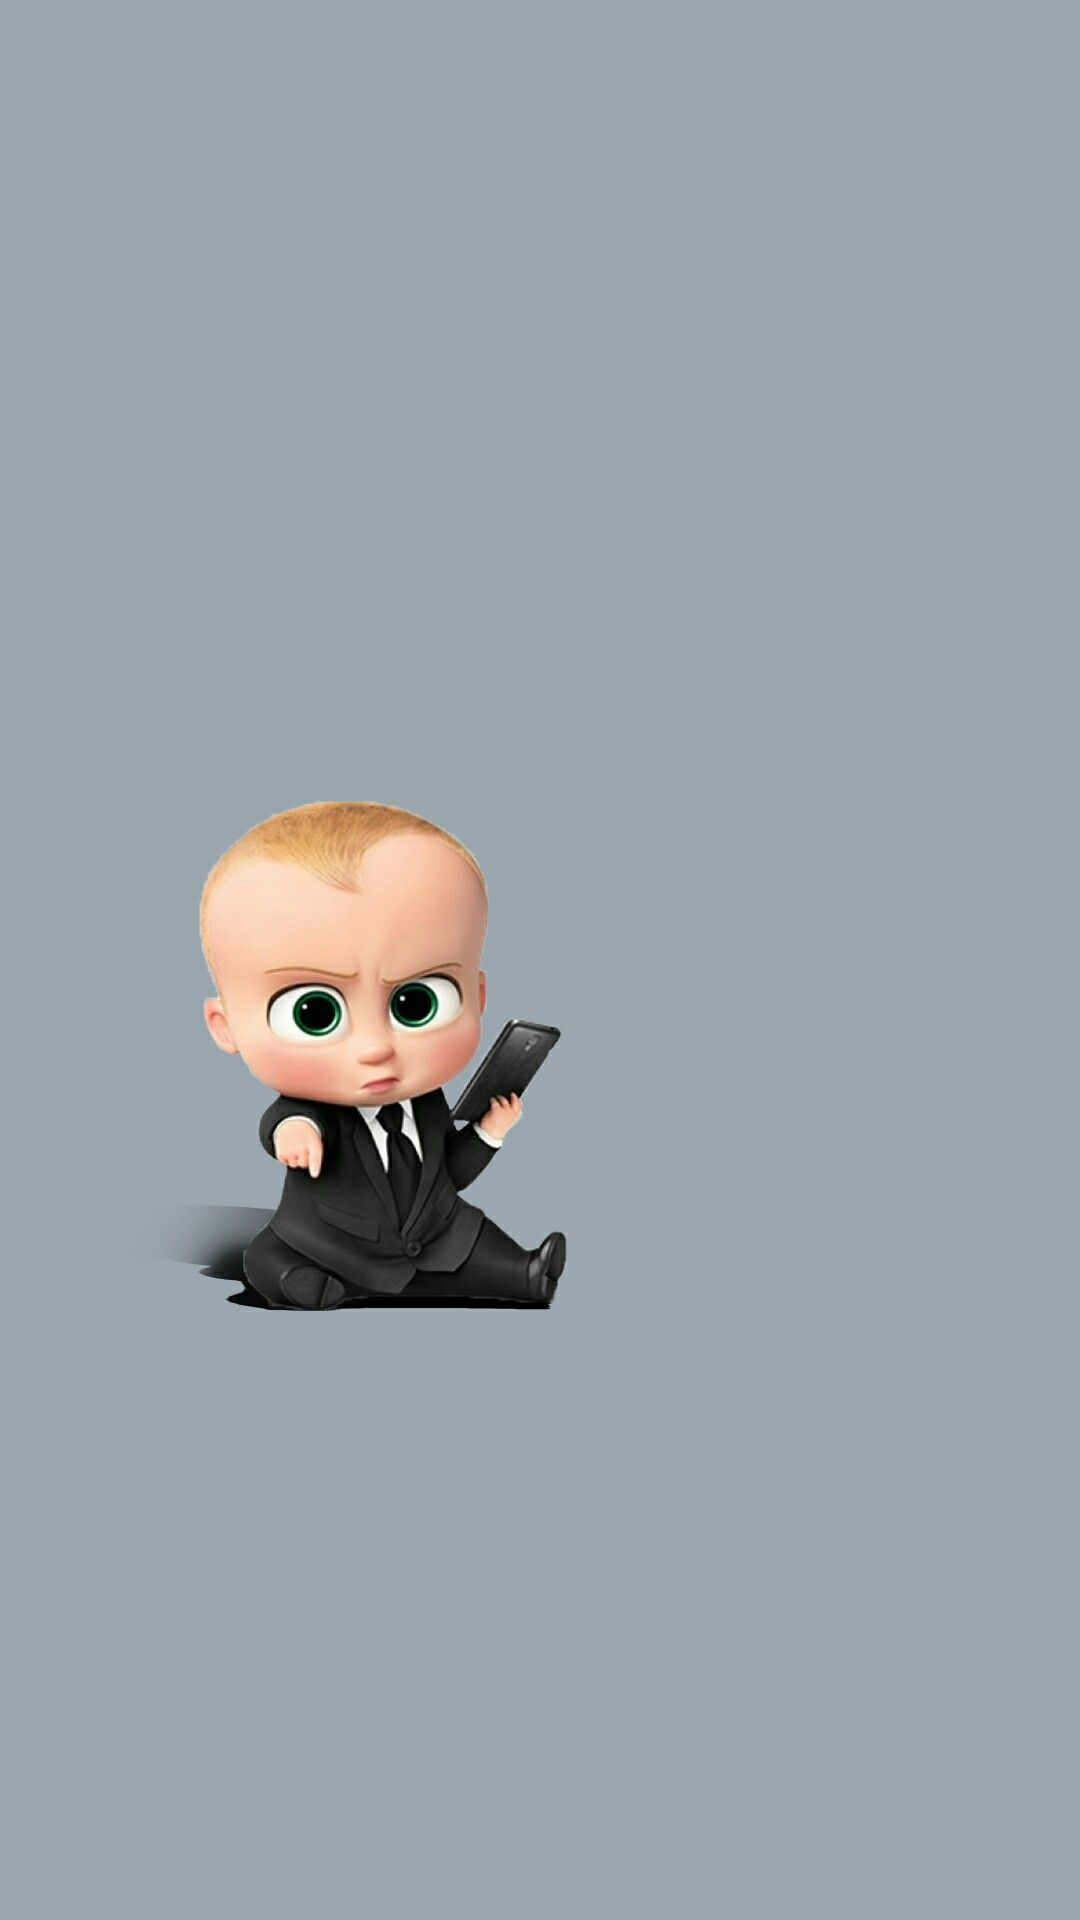 Boss Baby Cute Cartoon Wallpapers Cartoon Wallpaper Baby Cartoon